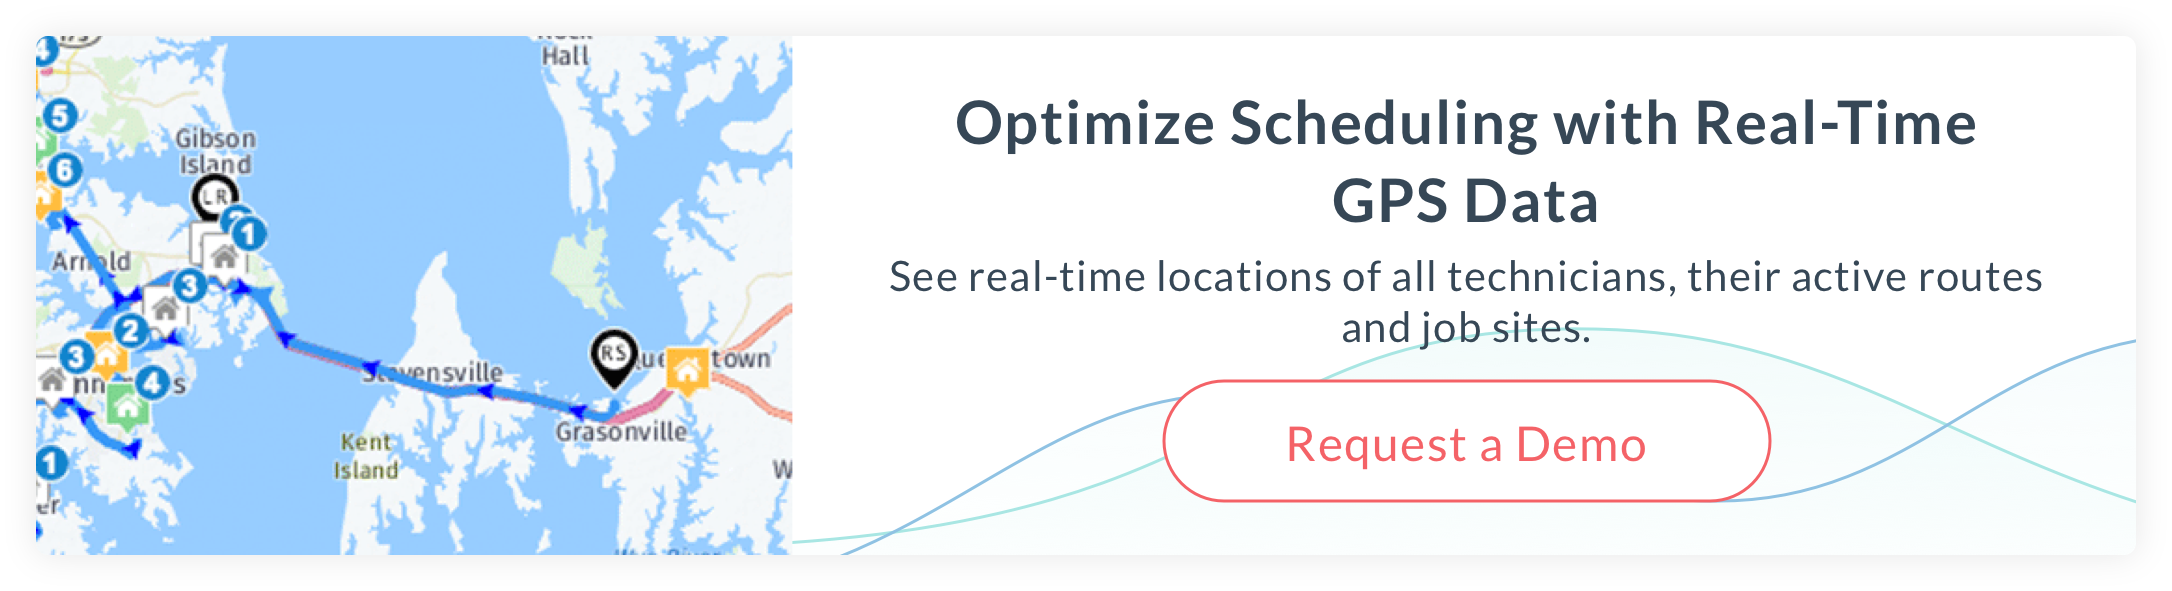 Optimize Route Scheduling with Real-Time GPS Data